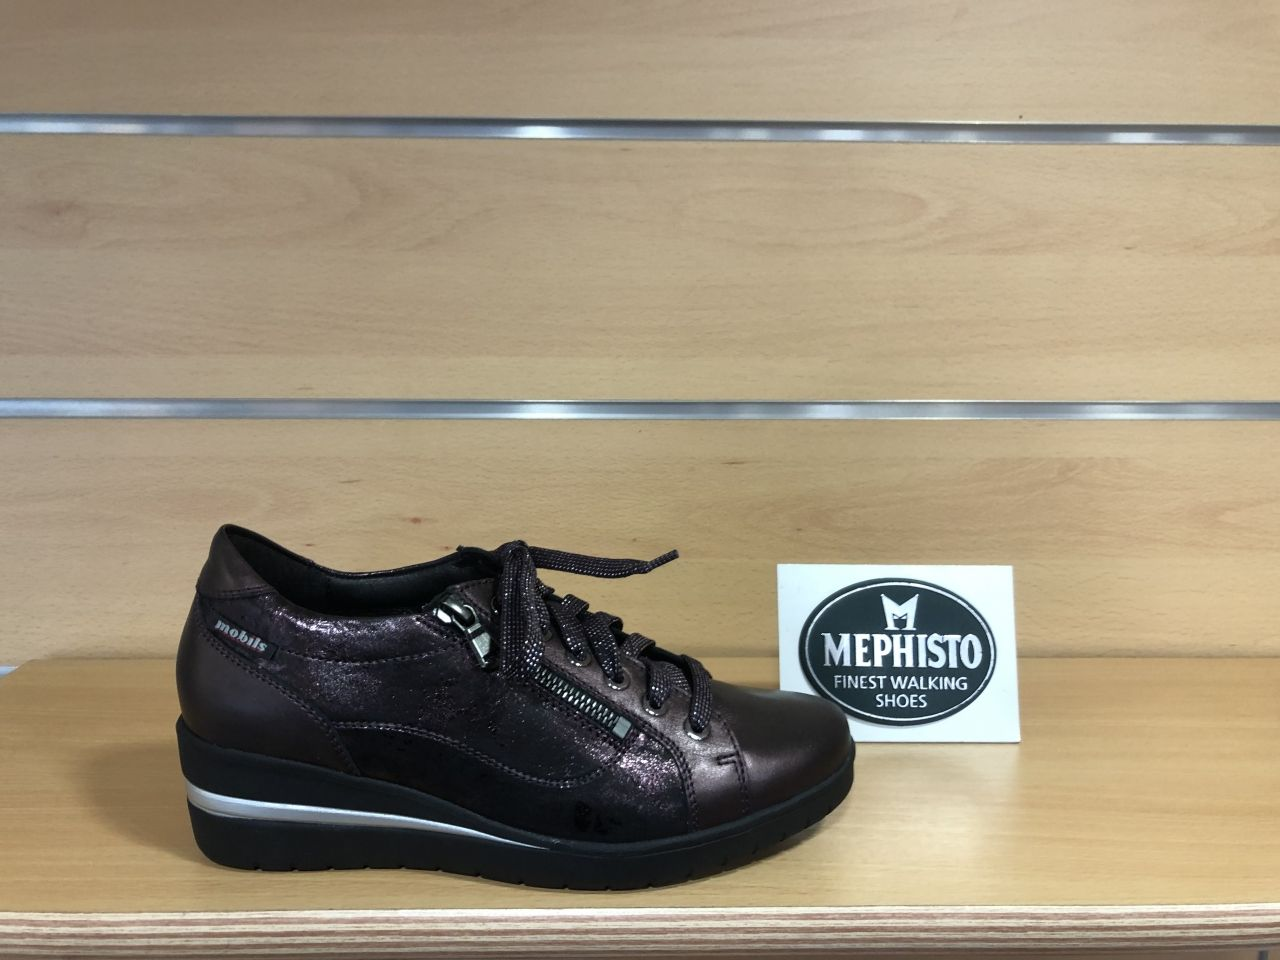 CHAUSSURES CÉRÈS - CHAUSSURES MEPHISTO